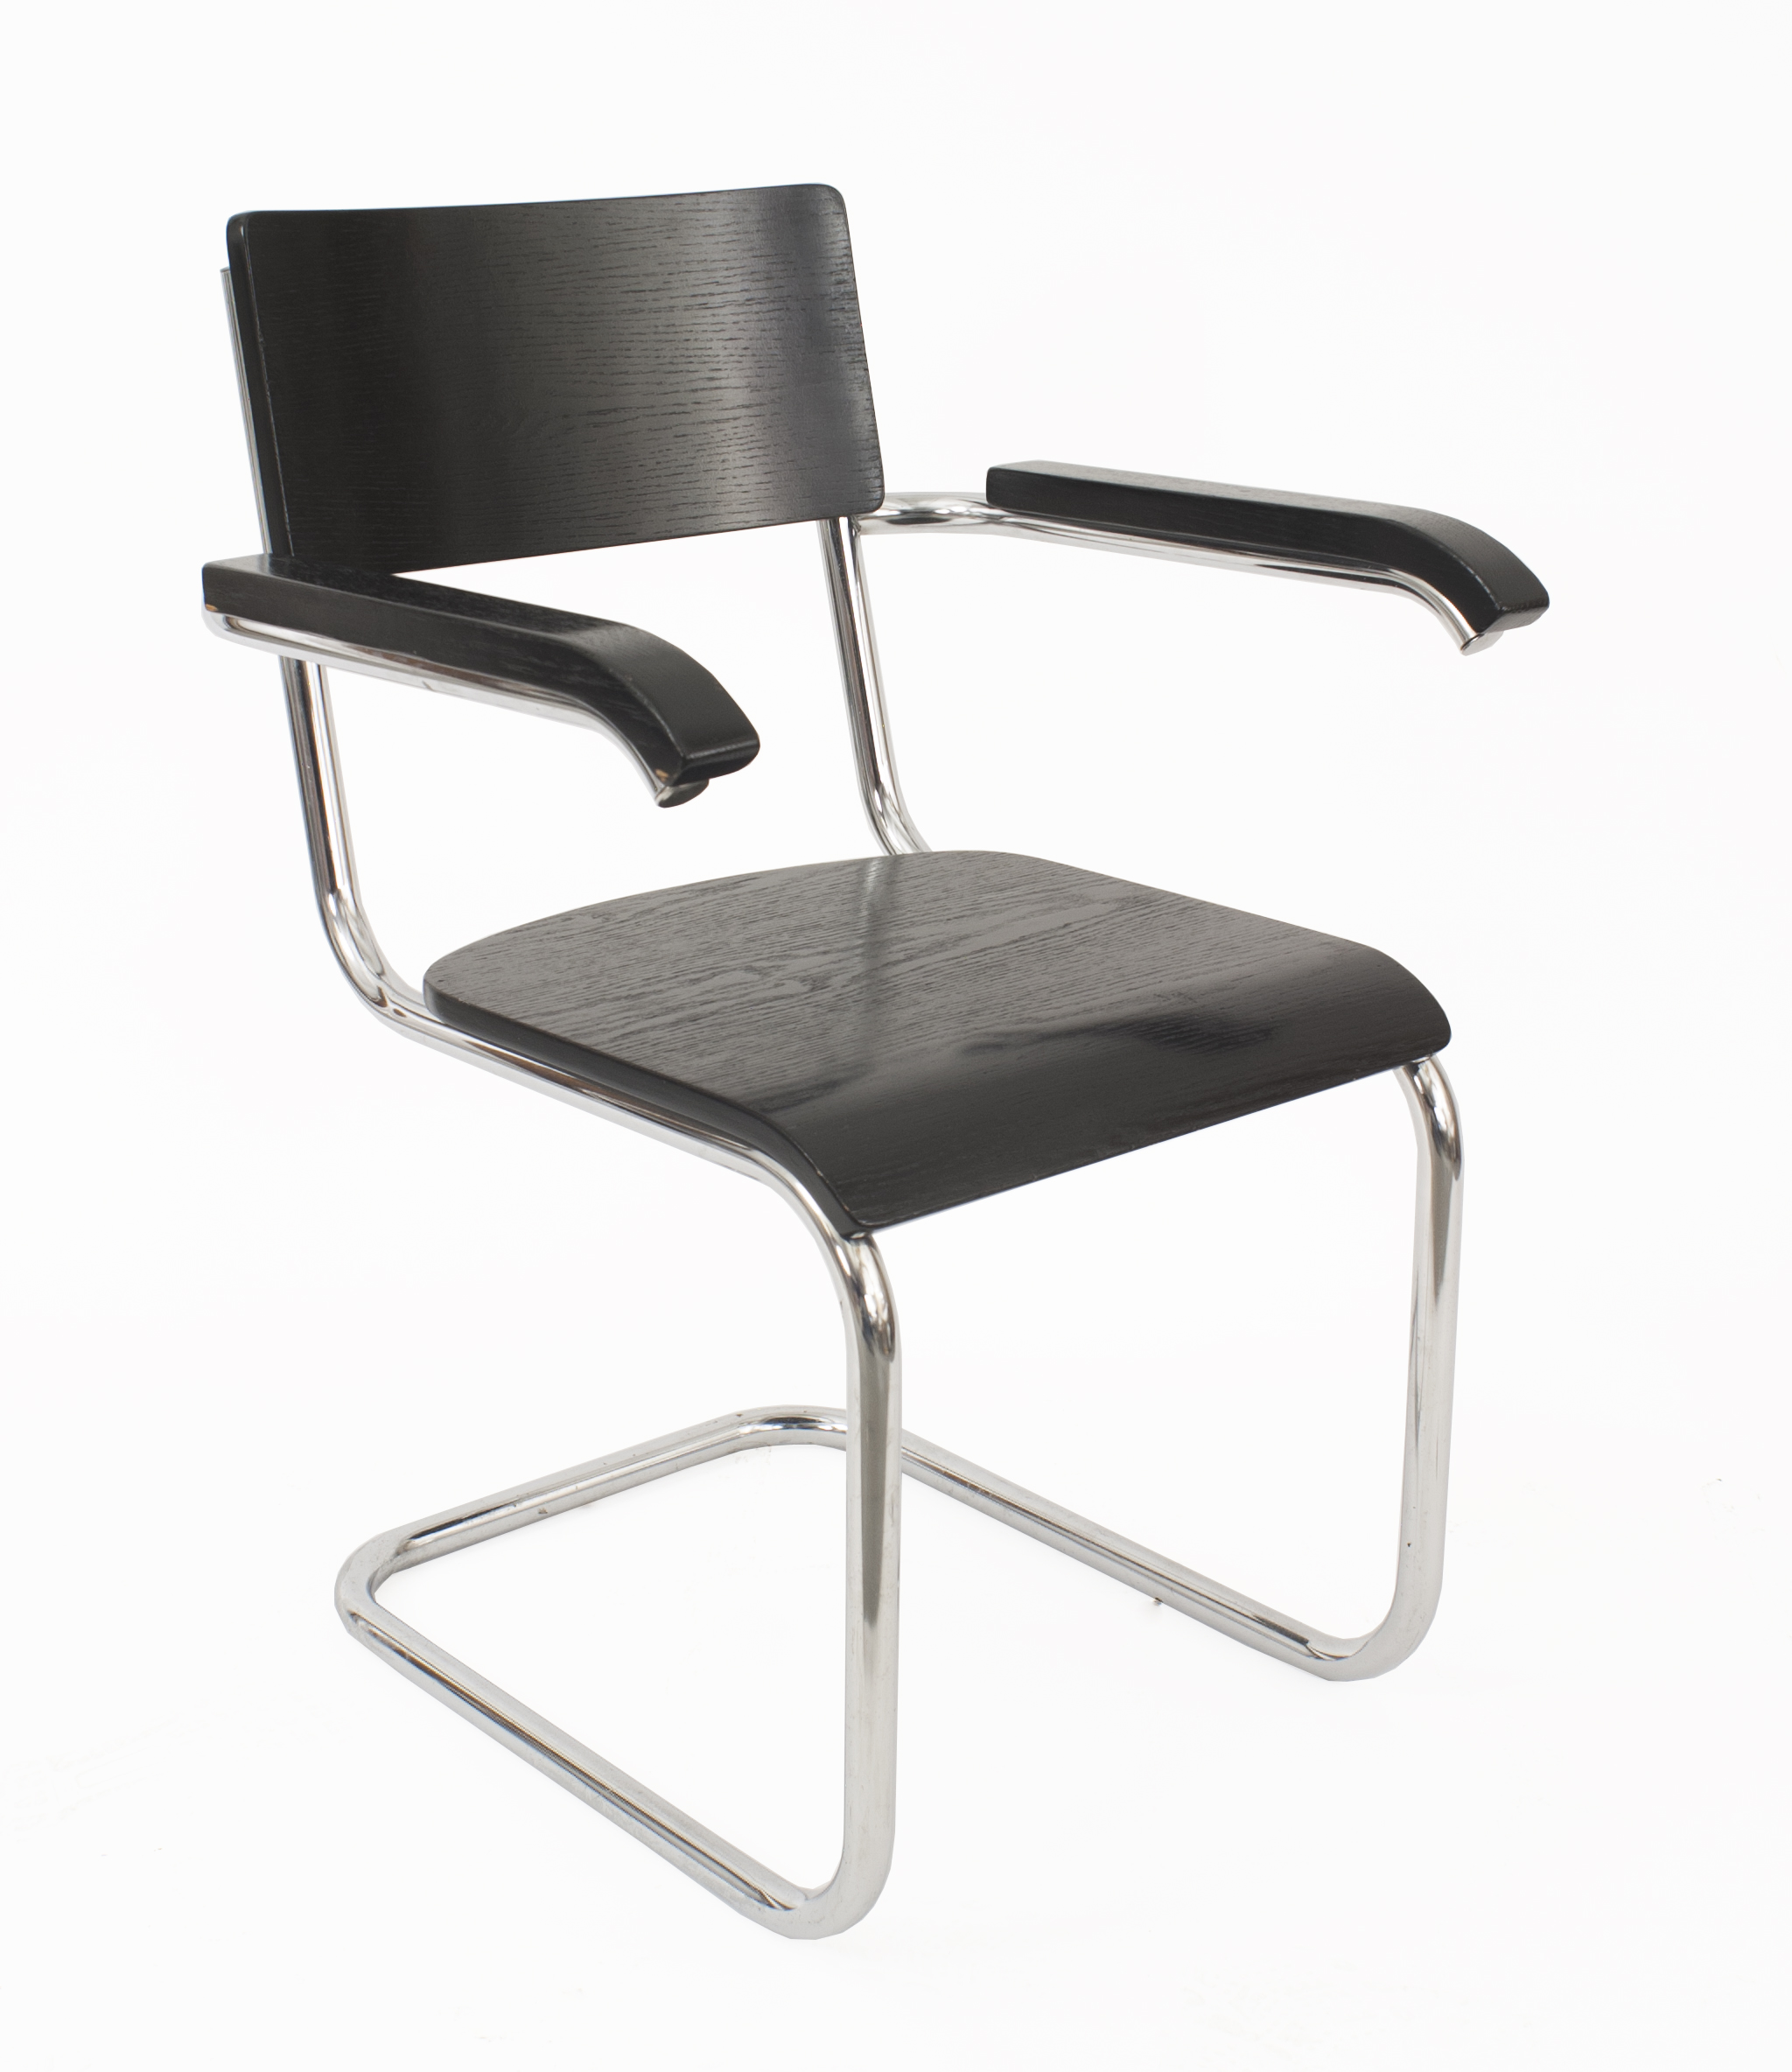 german office chairs. Wood Arm Chair With Chrome Trim Having A Shaped Back And Cane Seat (design Att: MARCEL BREUER; Mfg By THONET) (matching Desk: 061133) 061133A Art German Office Chairs